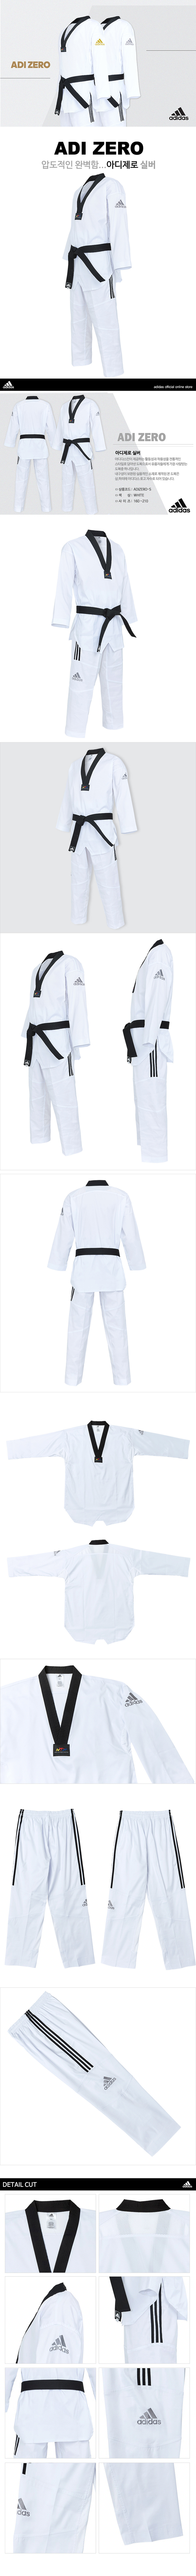 ADI-FIGHTER PANTS//ultra-light dobok pants//karatedo//CLIMA LITE//taekwondo uniform